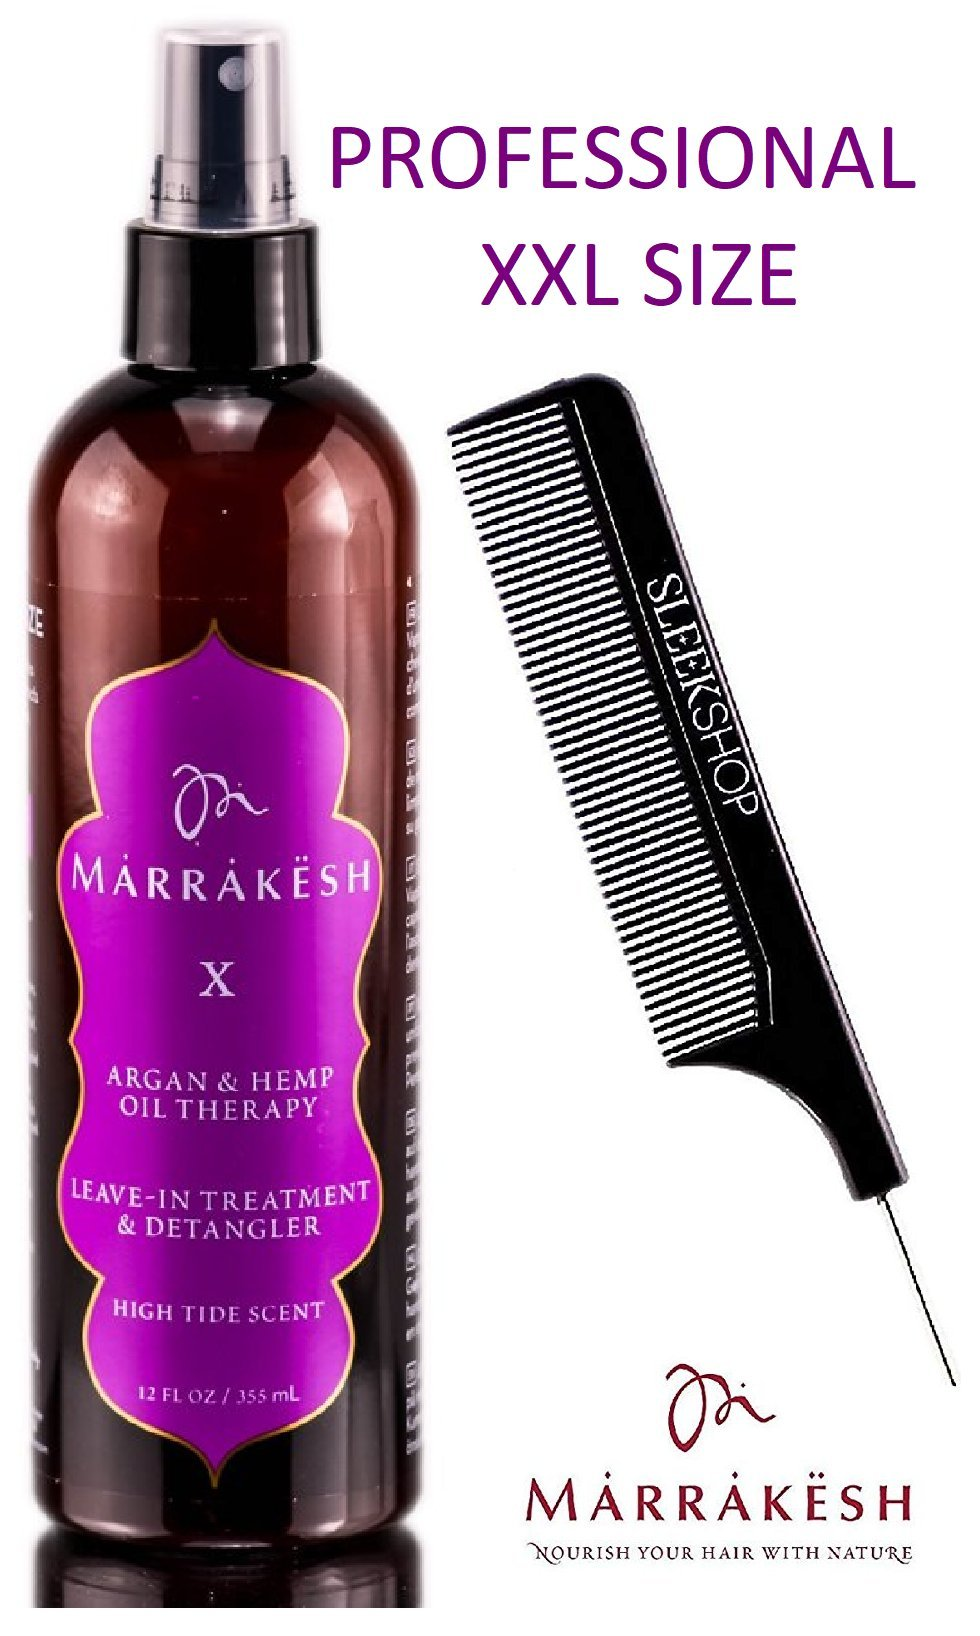 Marrakesh X Leave-In Treatment & Detangler with Argan & Hemp Oil Therapy Spray Conditioner by Earthly Body (with Sleek Steel Pin Tail Comb) (High Tide - 12 oz/XXL PRO) by Earthly Body by Marrakesh